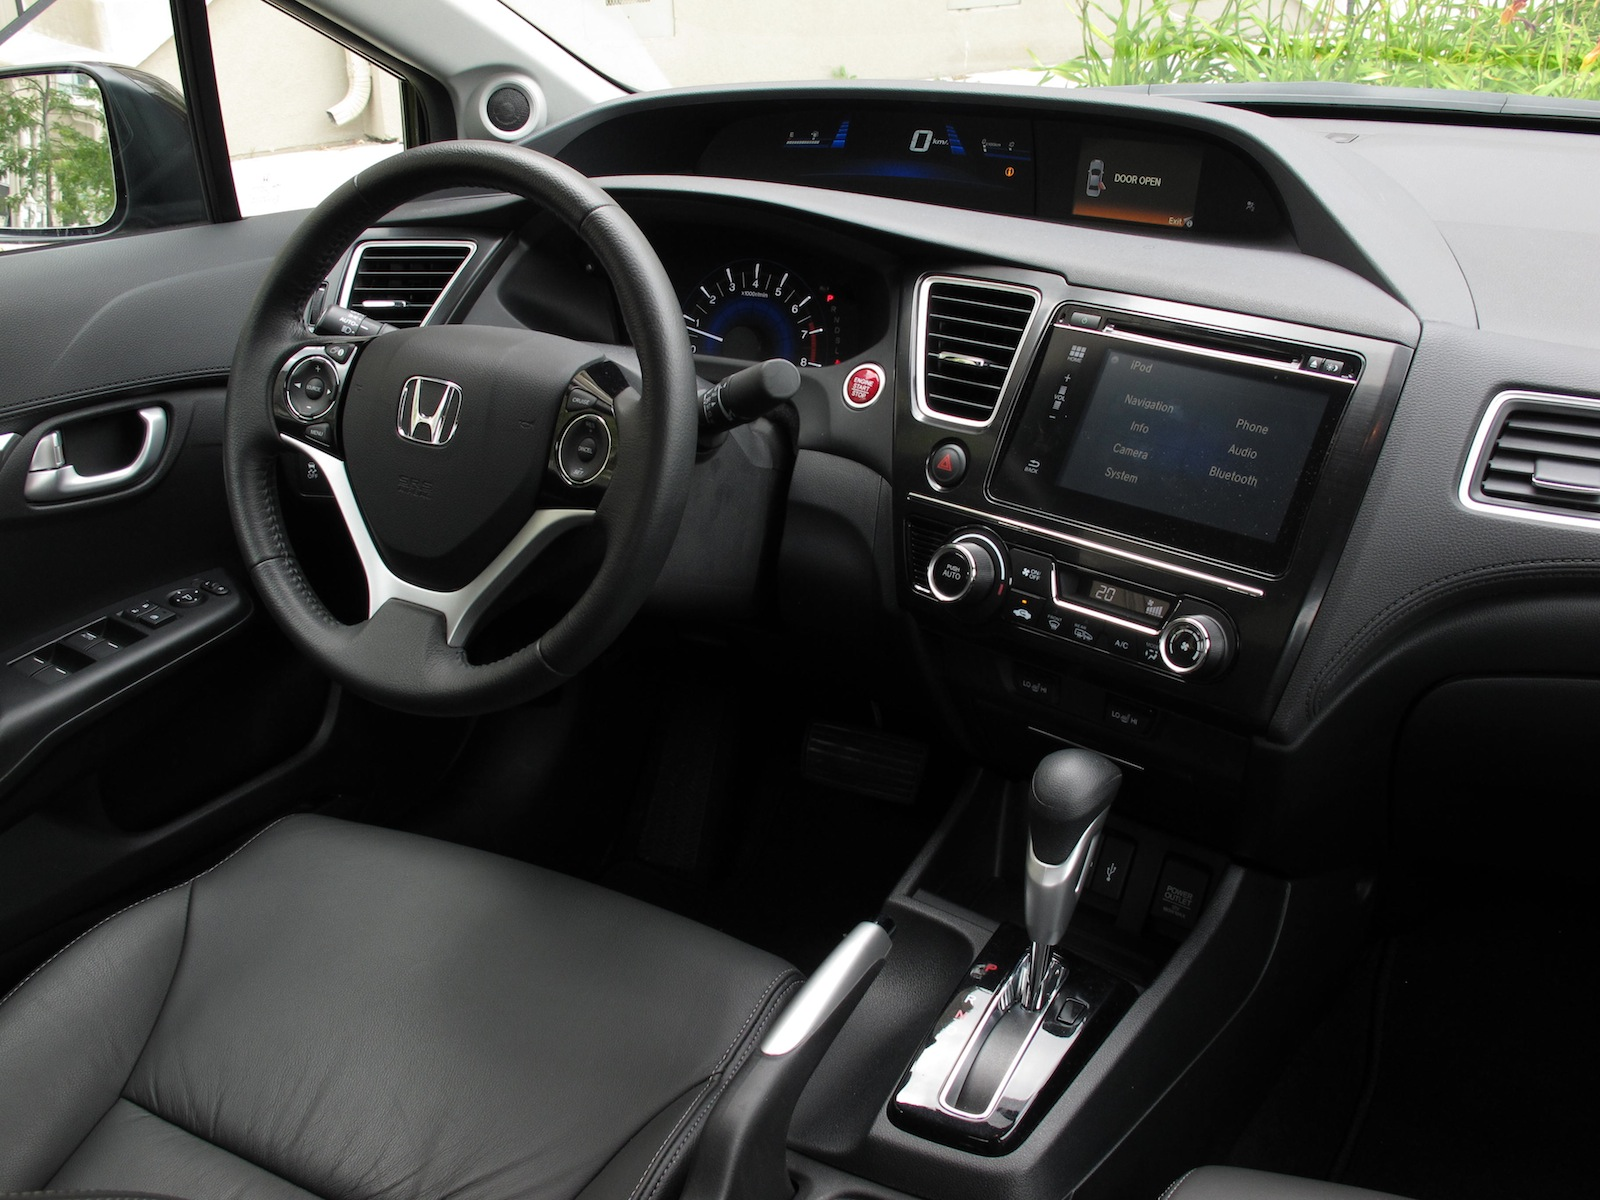 2014 Honda Civic Touring Sedan Review - Cars, Photos, Test ...